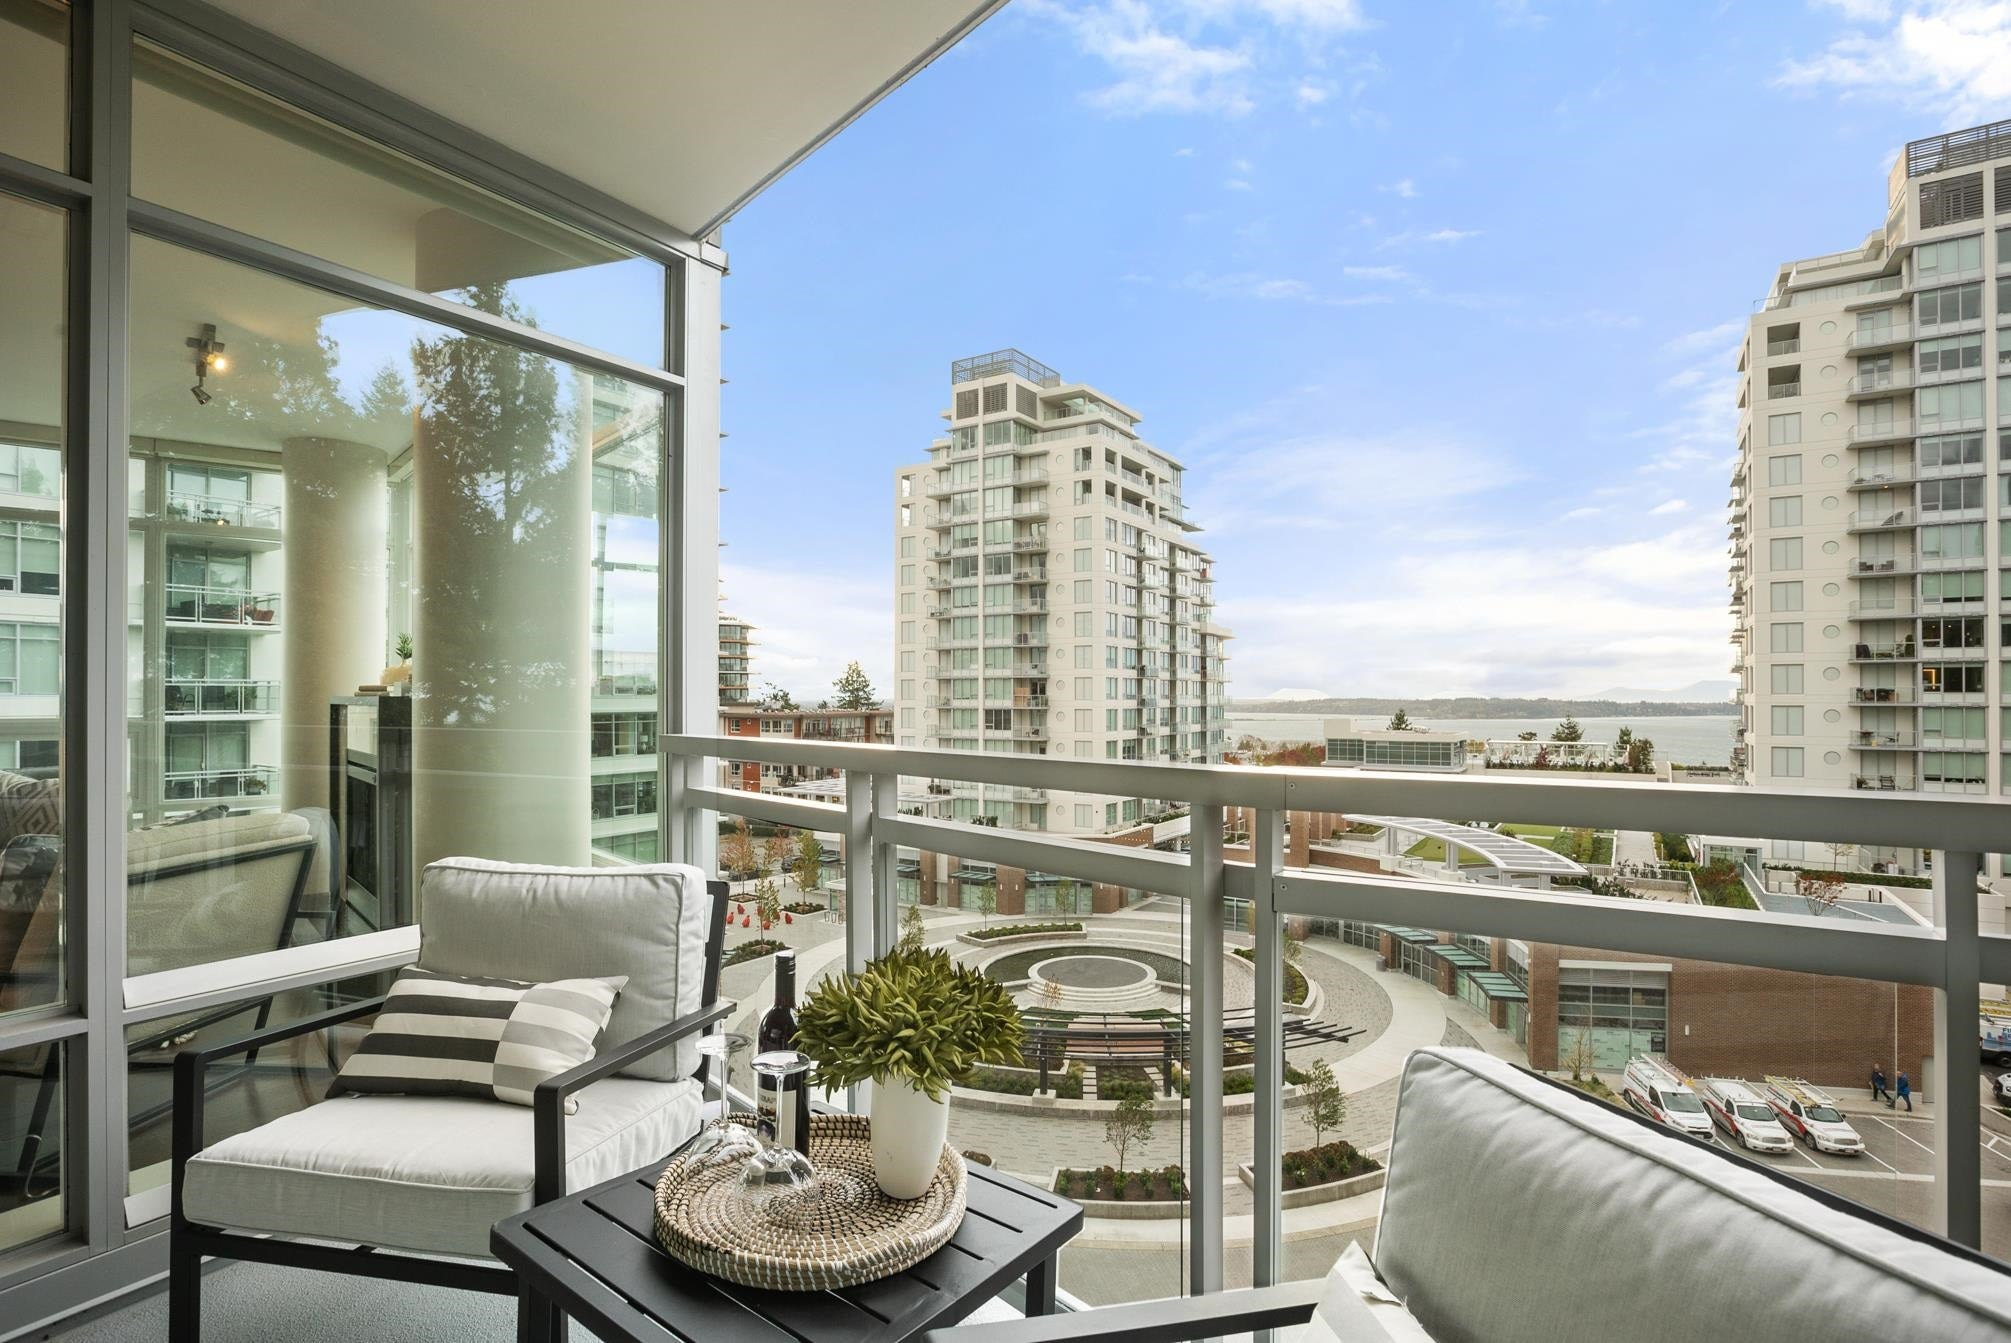 601 15152 RUSSELL AVENUE - White Rock Apartment/Condo for sale, 2 Bedrooms (R2628183)